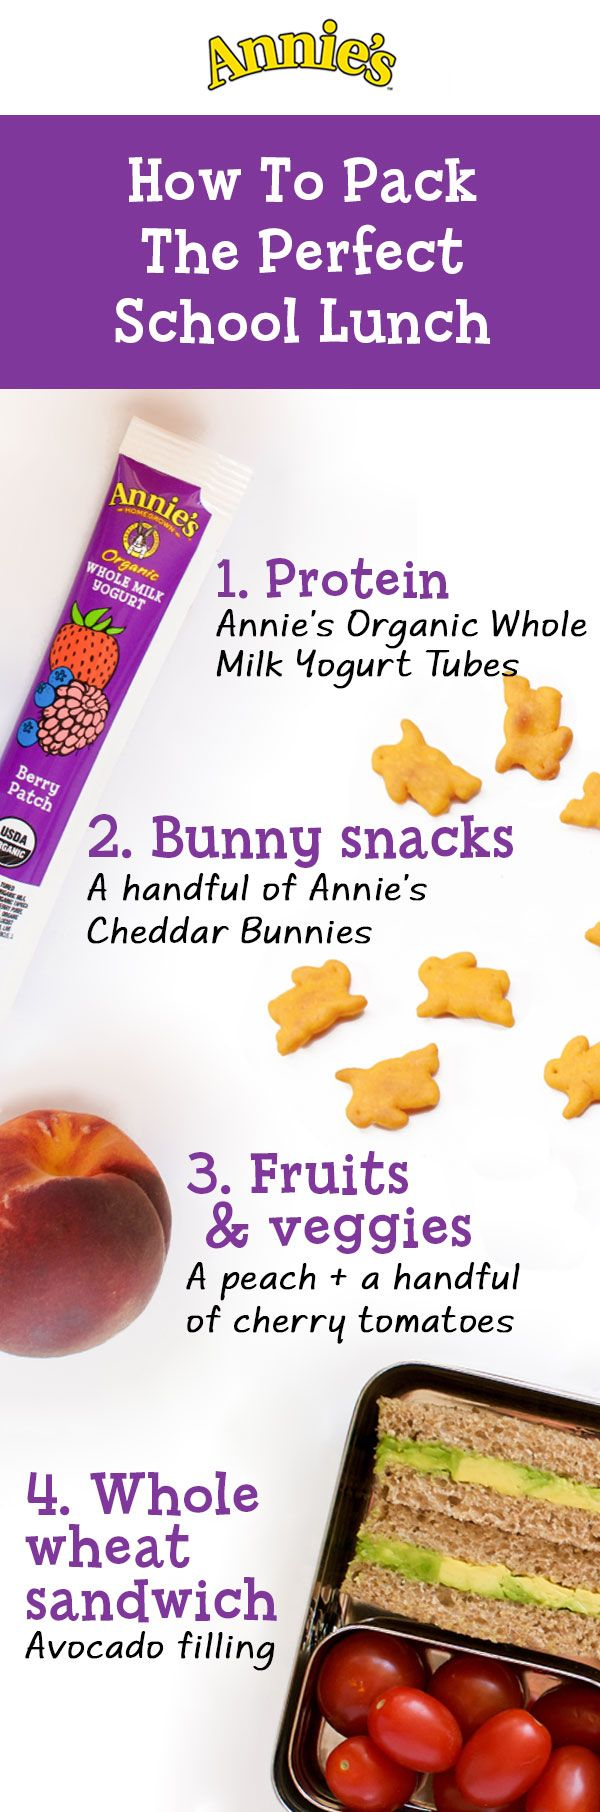 Back to school time is the perfect opportunity to start packing a cleaner lunchbox for your little ones. Luckily, Annie's has heaps of delicious, wholesome products that you can feel good about packing. Start with protein like Annie's Organic Whole Milk Yogurt Tubes as the foundation for a yummy lunch, then toss in some fresh fruit, veggies and Annie's Cheddar Bunnies for good measure.